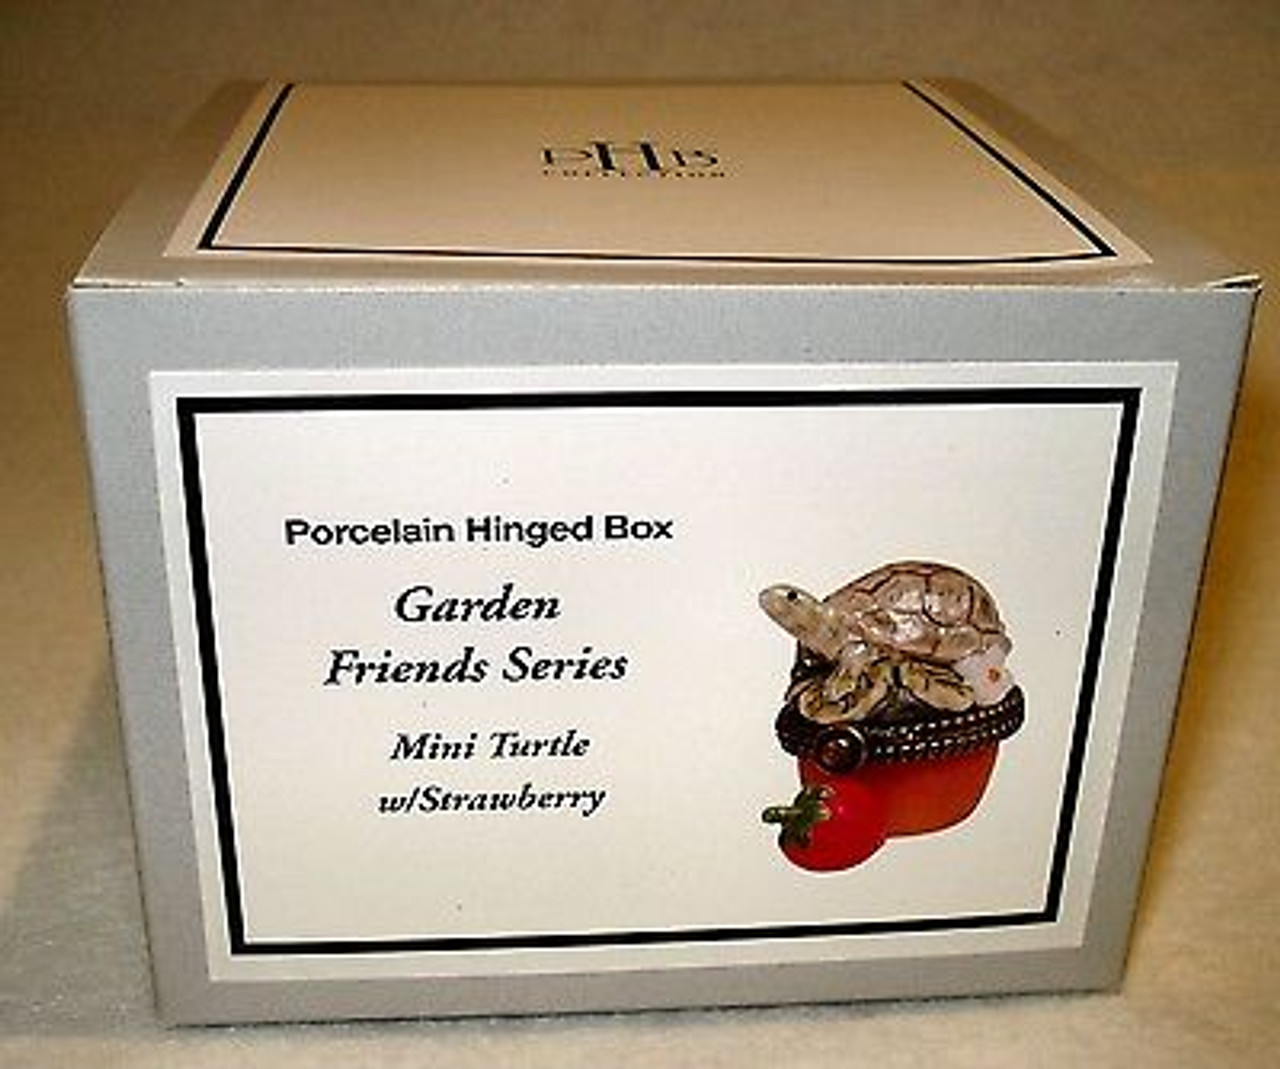 Mini Turtle with Strawberry PHB